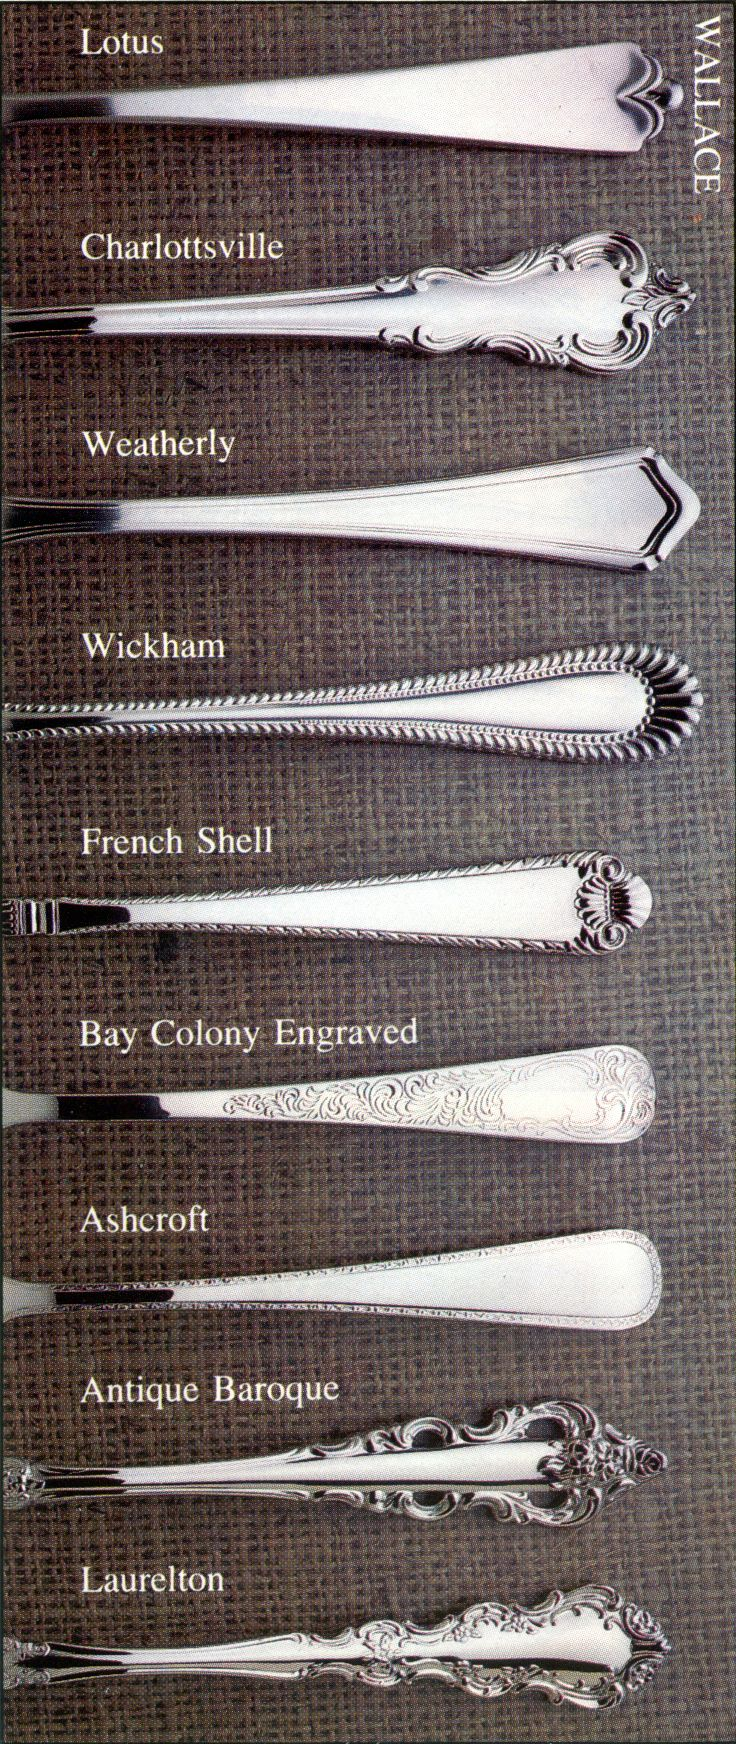 Wallace stainless flatware patterns